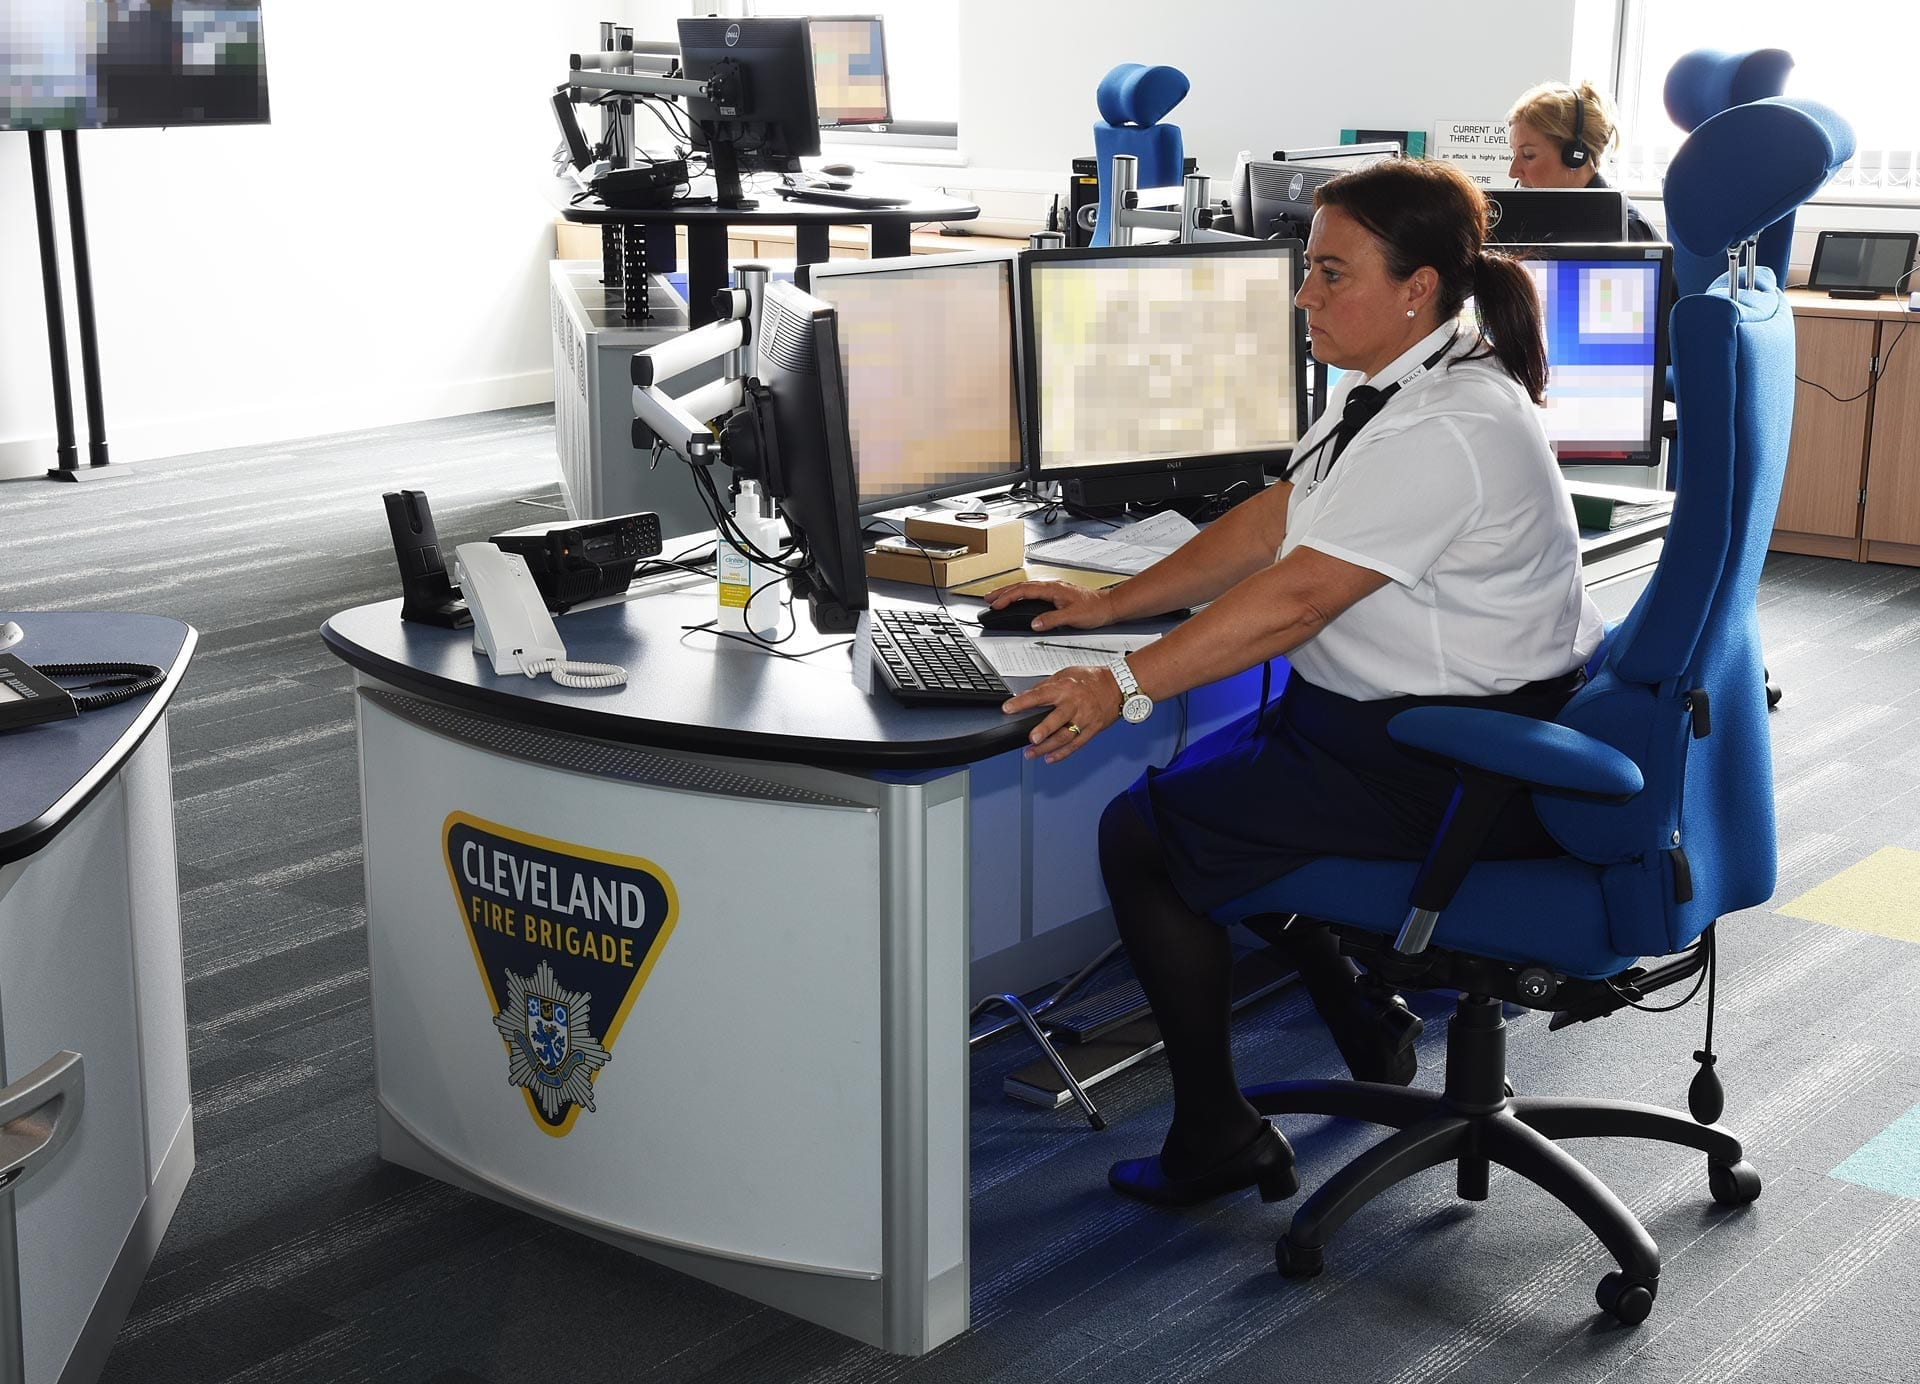 height-adjustable-consoles-for-cleveland-fire-brigade-thinking-space-systems-close up of desk